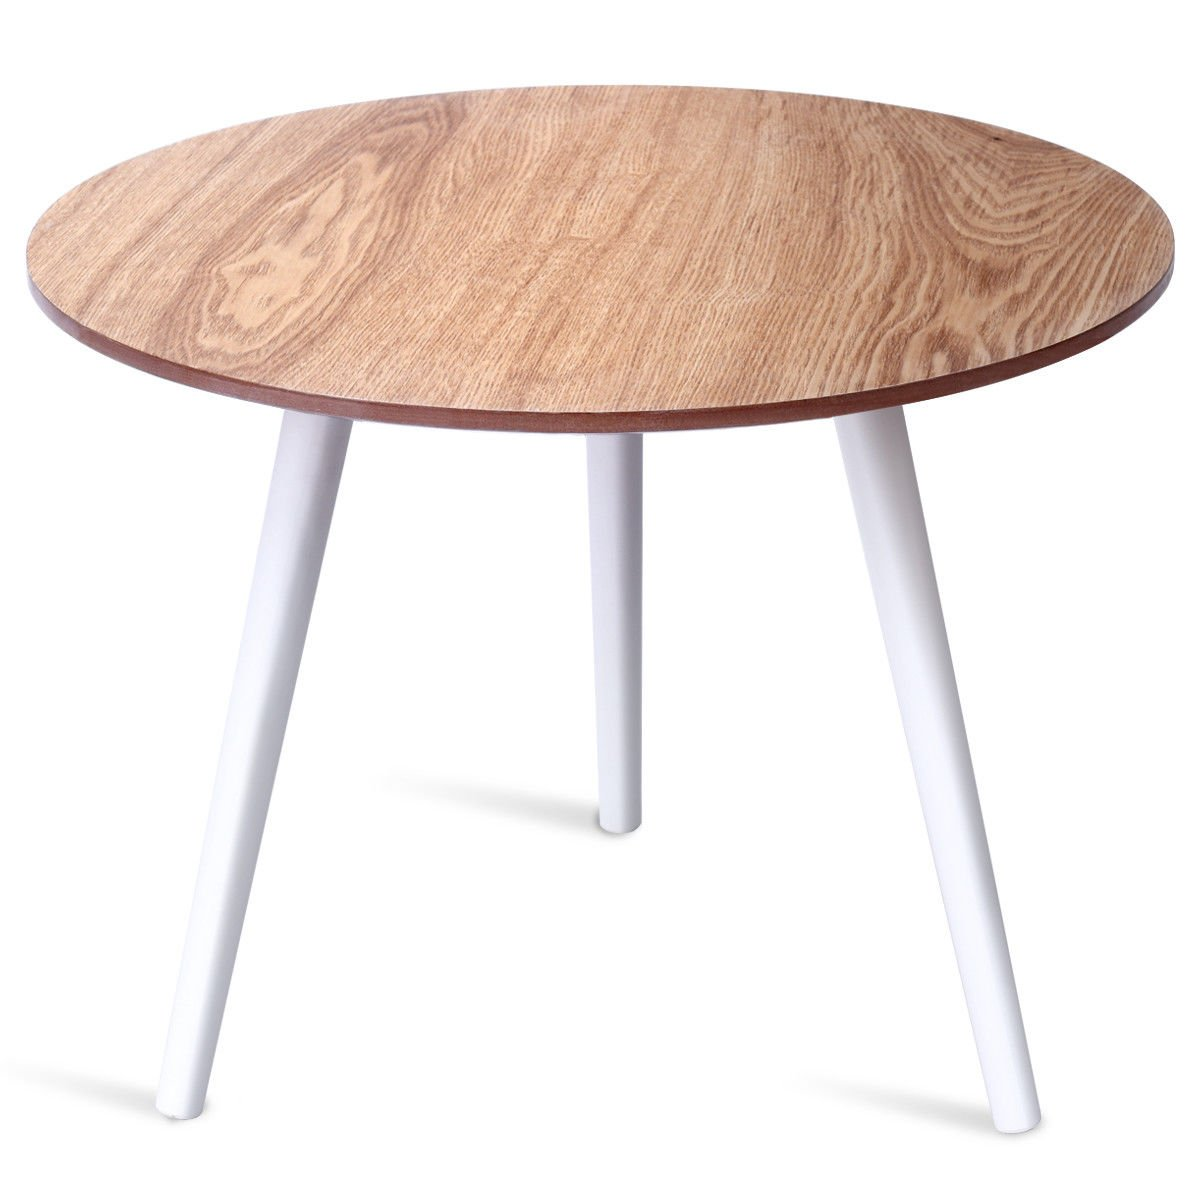 Modern Round Coffee Table Side Tea End Table Pine Furniture Dining Living Room Modern Round Coffee Table Side Tea End Table Pine Furniture Dining Living Room